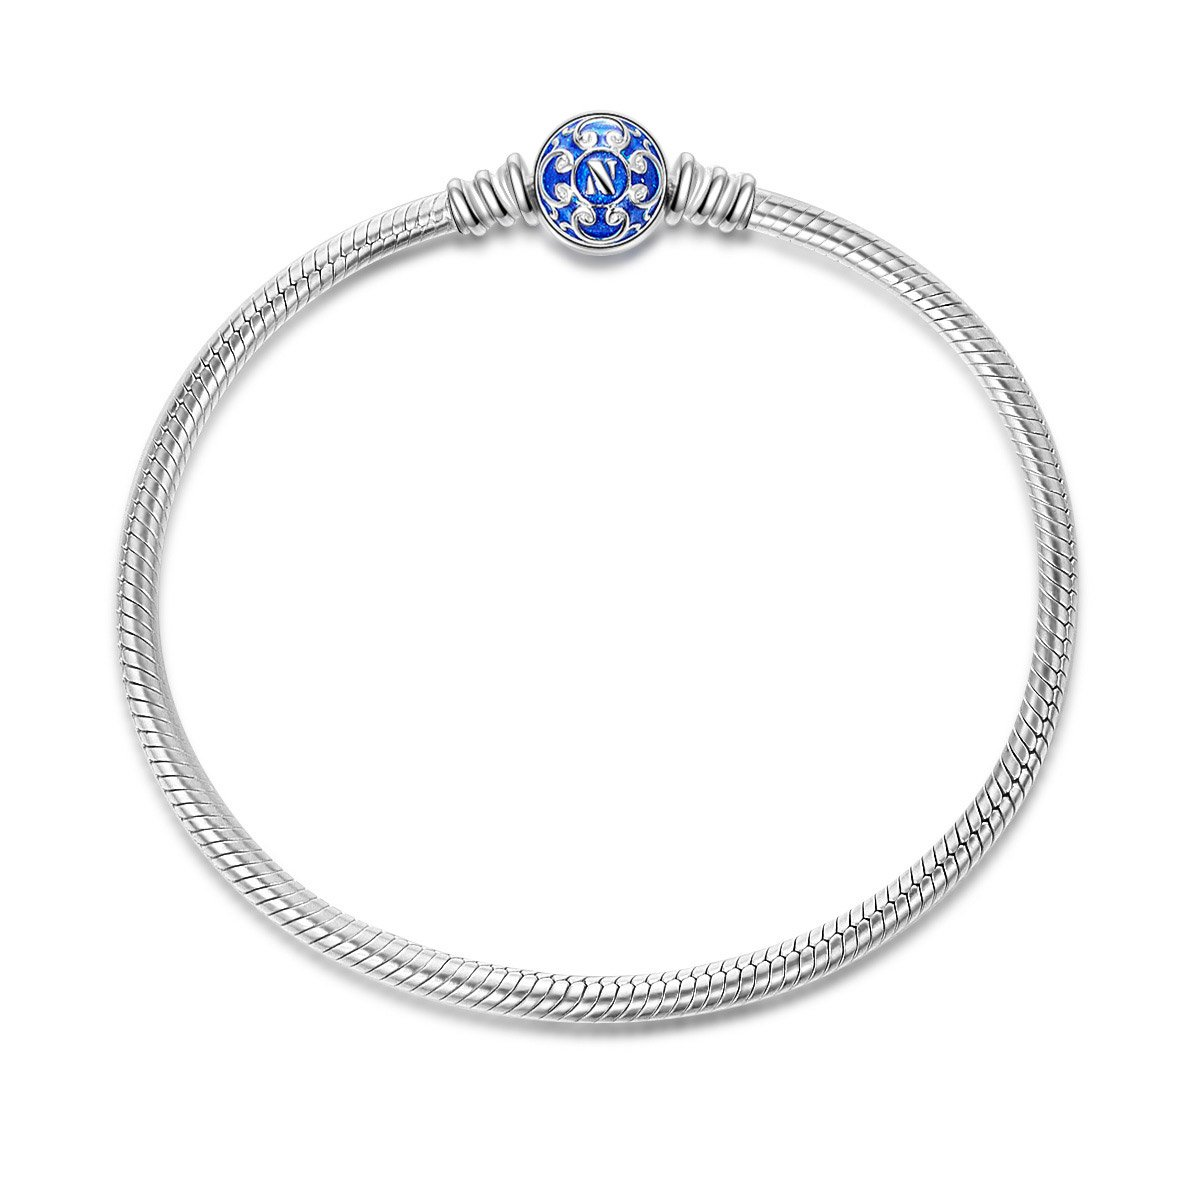 NinaQueen 925 Sterling Silver Snake Chain Bracelet with Blue Clasp Charms 8.3 Inches